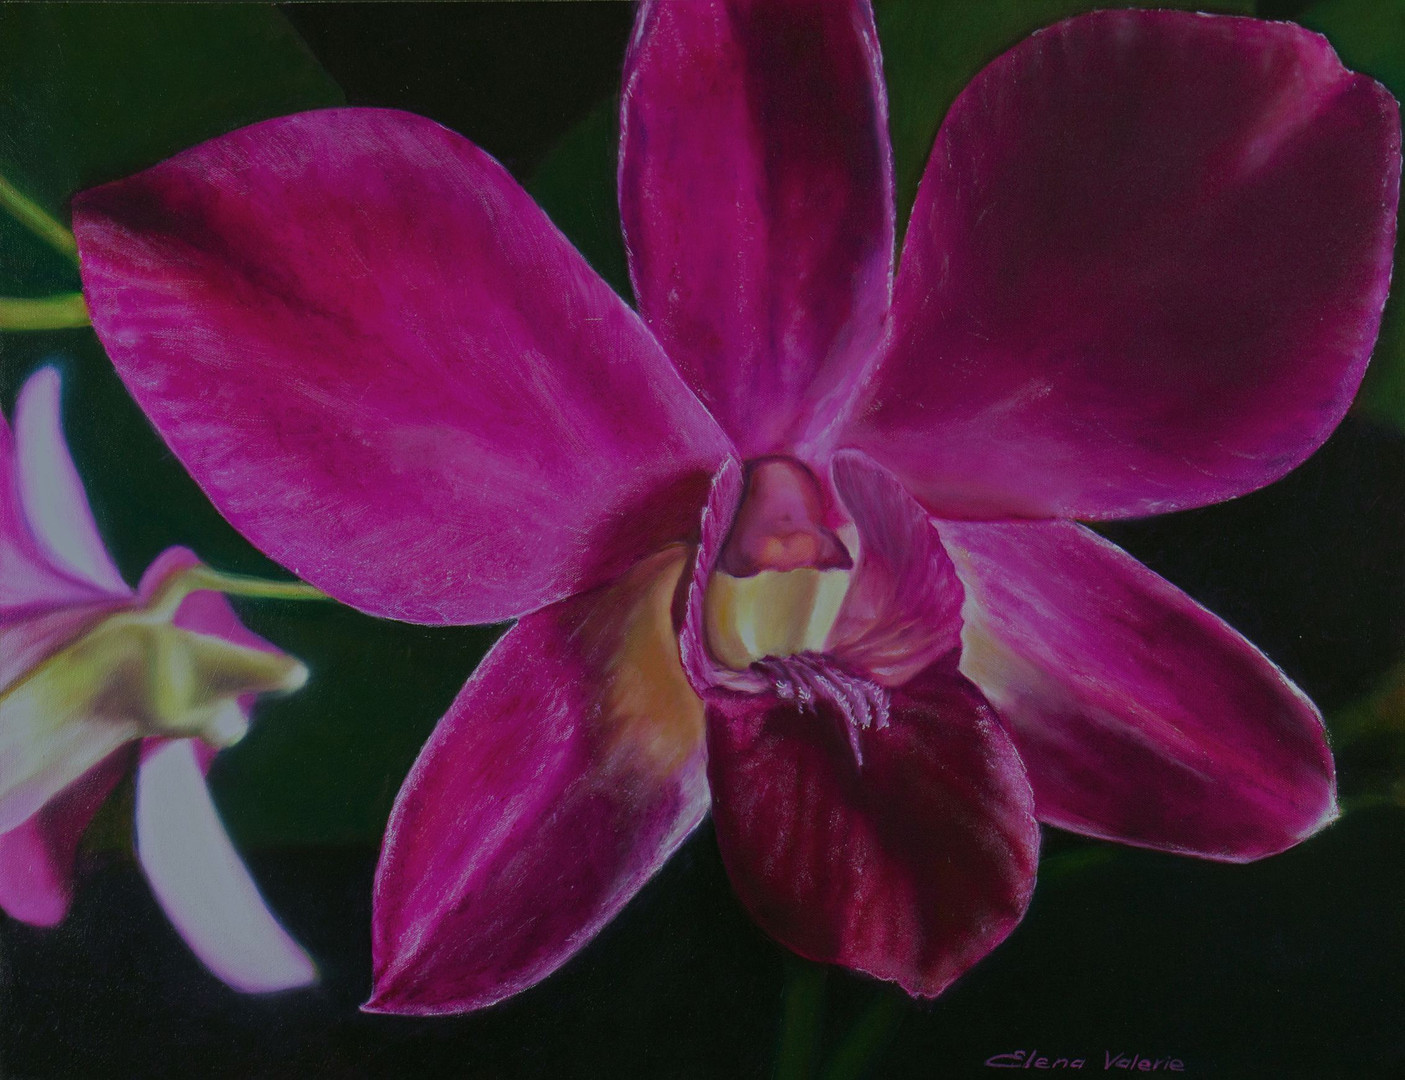 Magenta Orchid by Elena Valerie